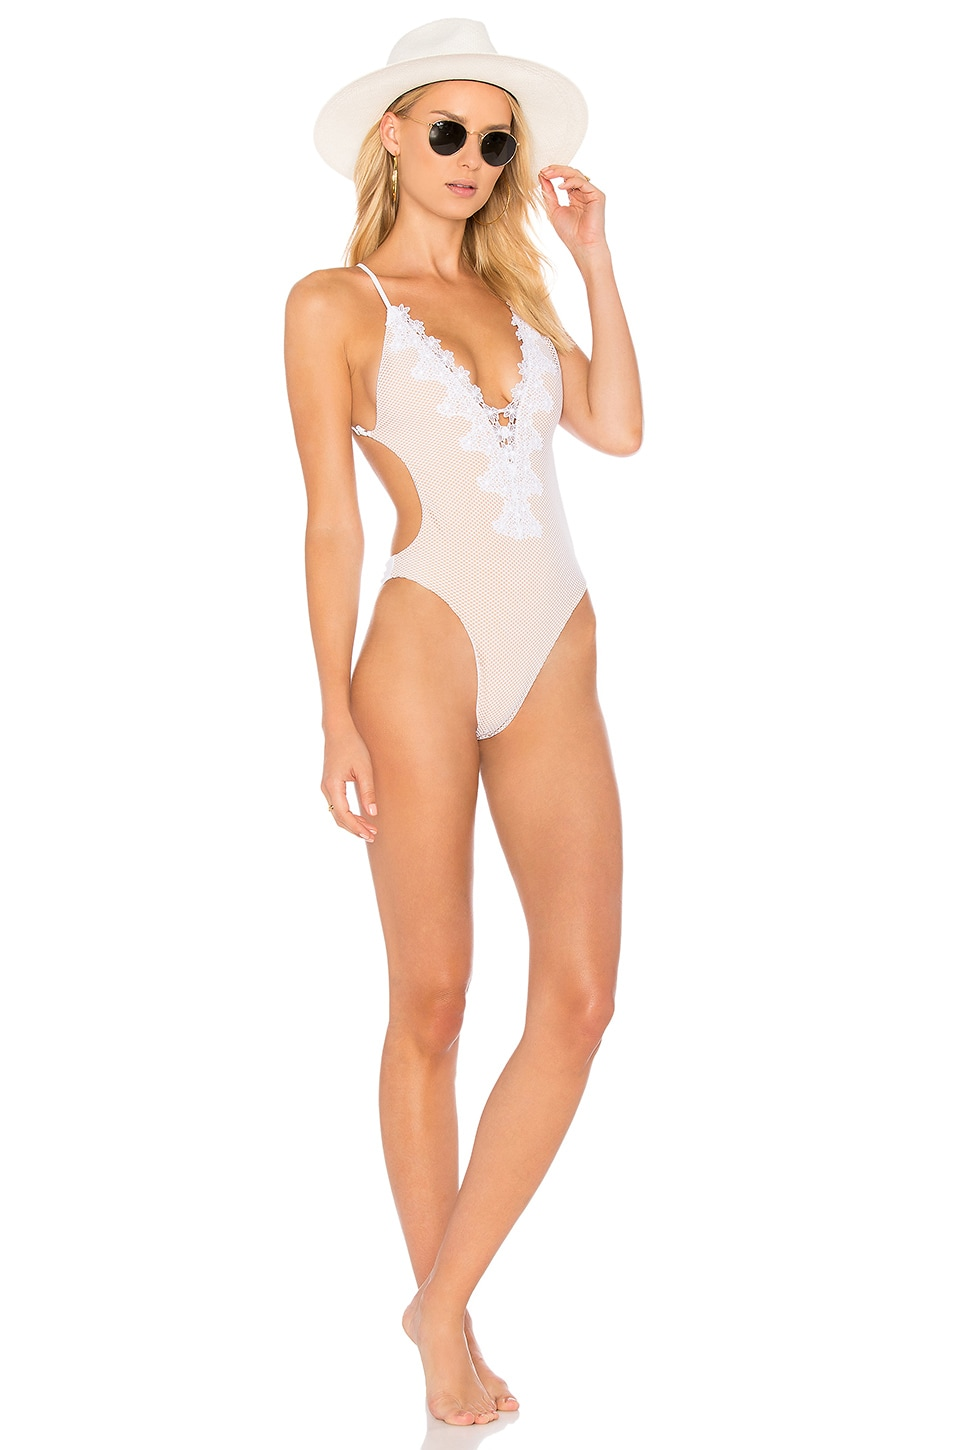 Magnolia One Piece Swimsuit